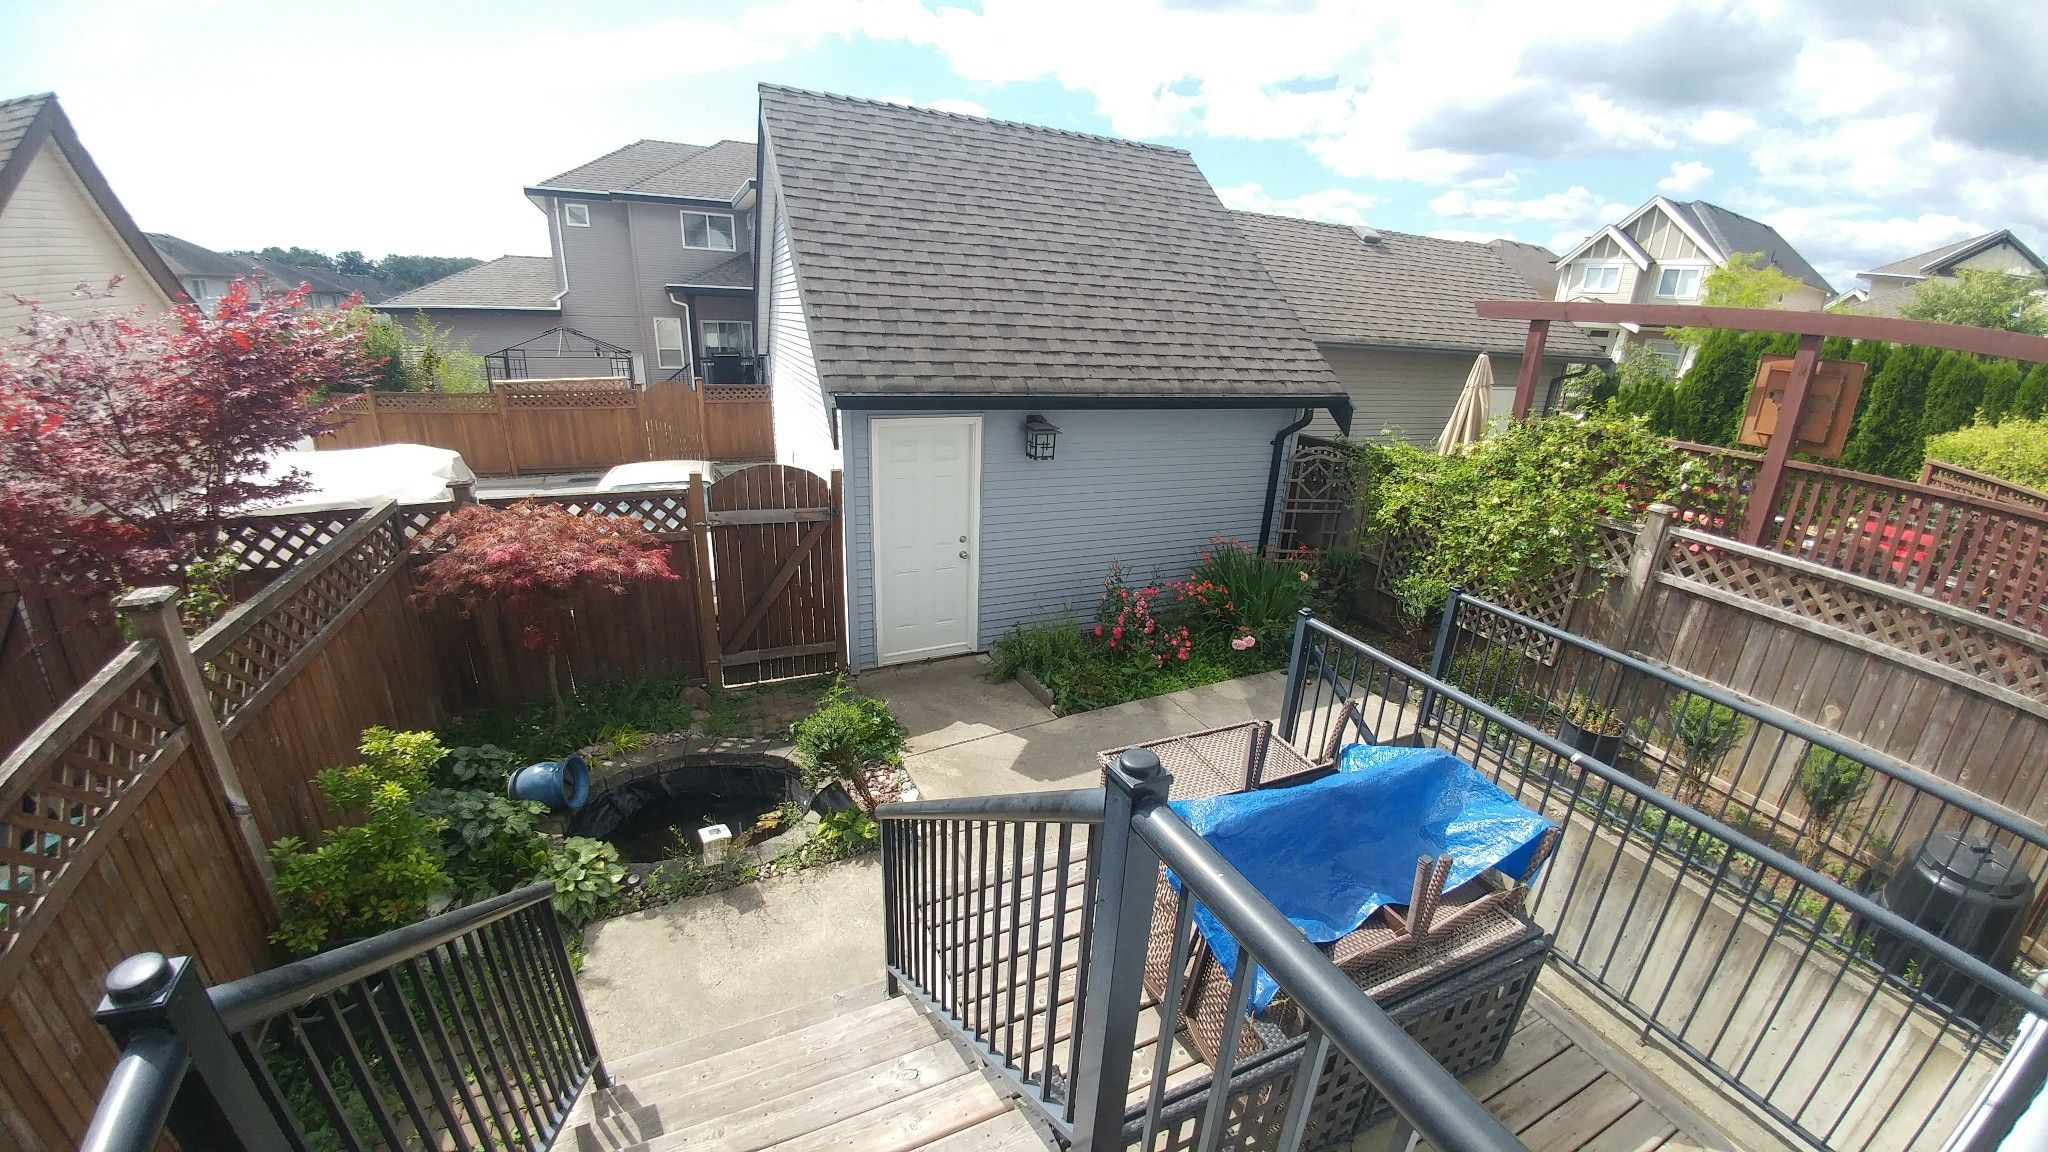 Photo 5: Photos: Upper 7137 190th St. in Surrey: Condo for rent